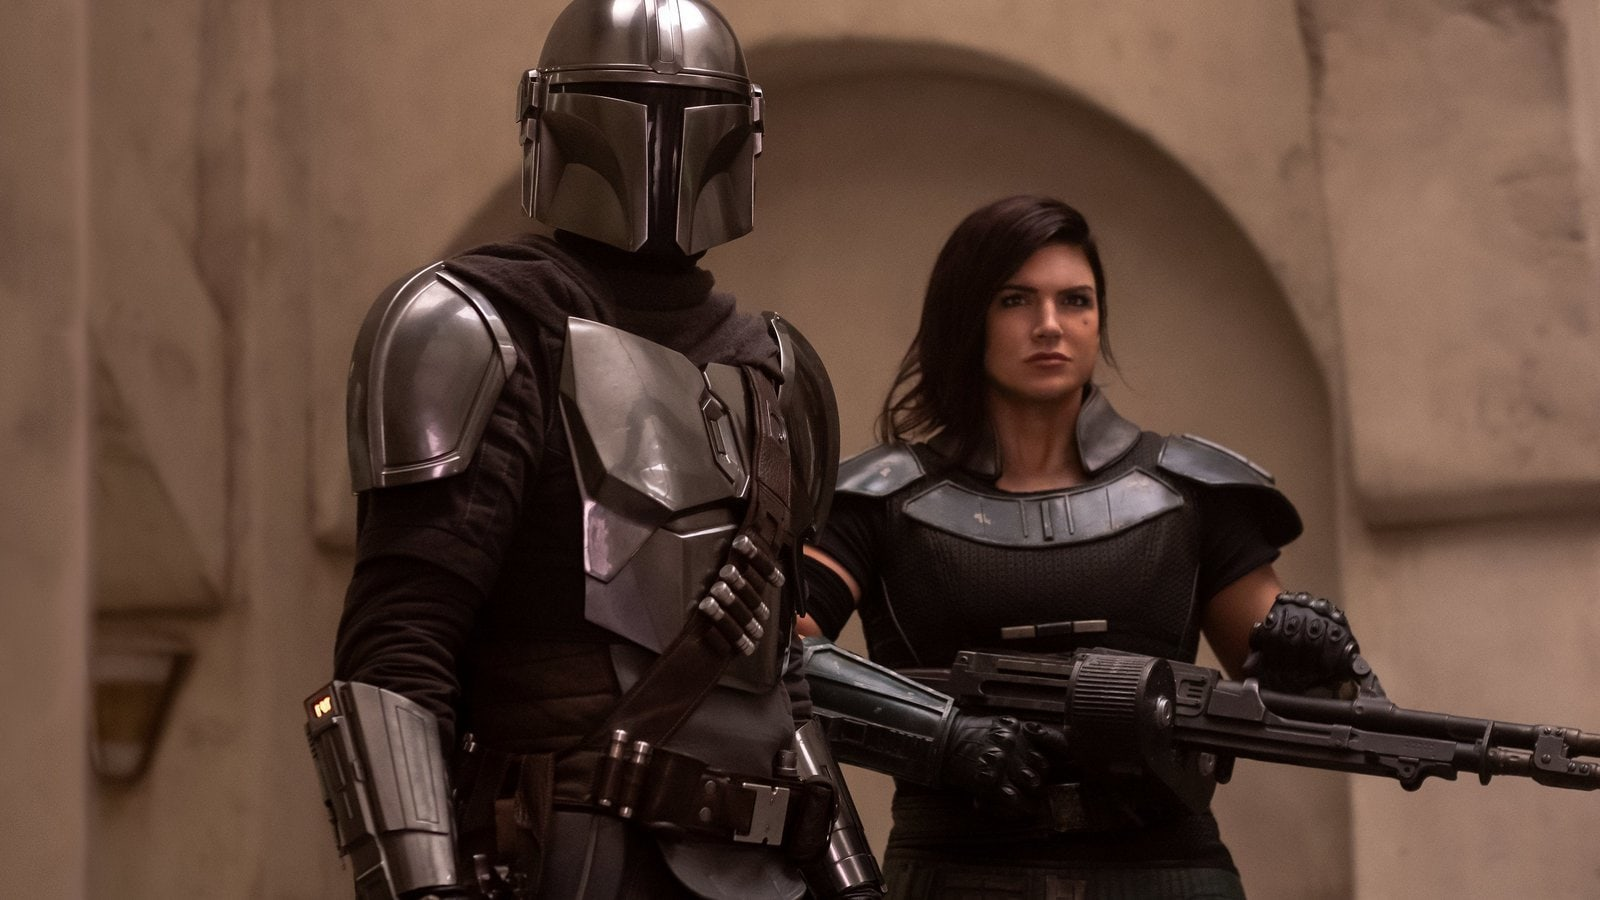 The Mandalorian | Chapter 8: Redemption Episode Guide